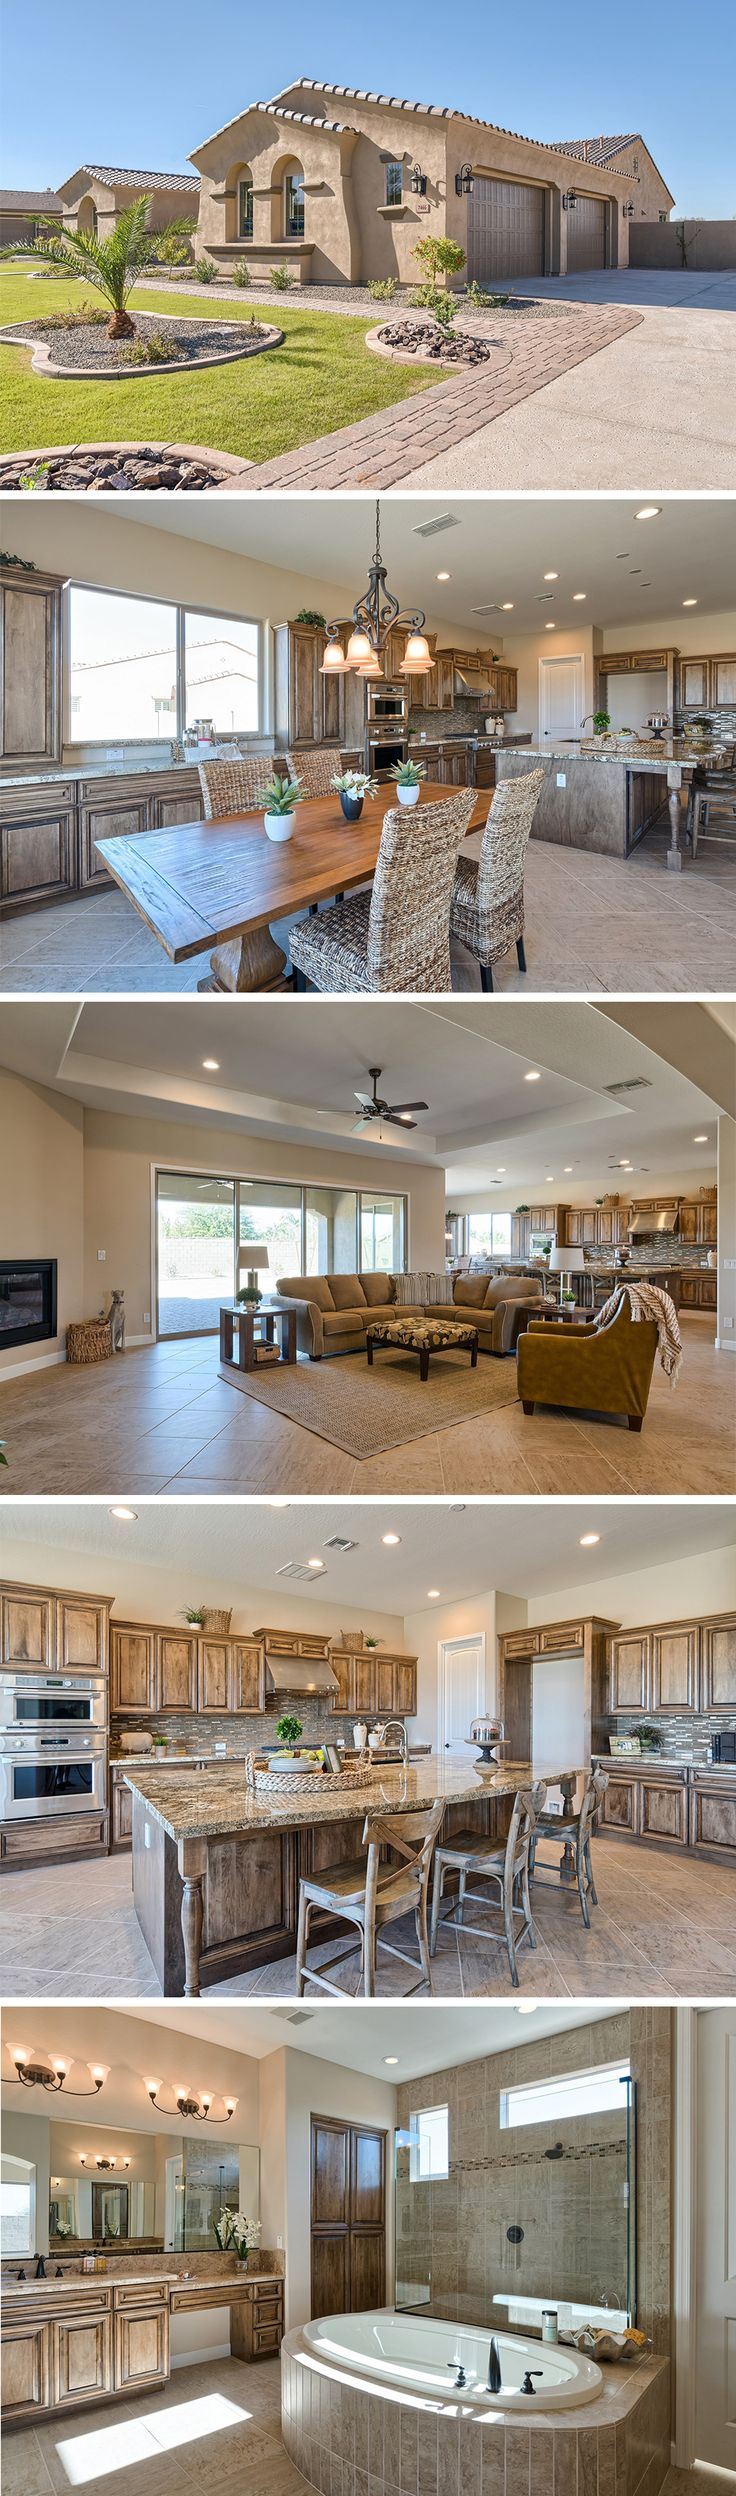 Spectacular Southwest Style Home Situated On A 1 2 Acre Lot In The Gated Gilbert